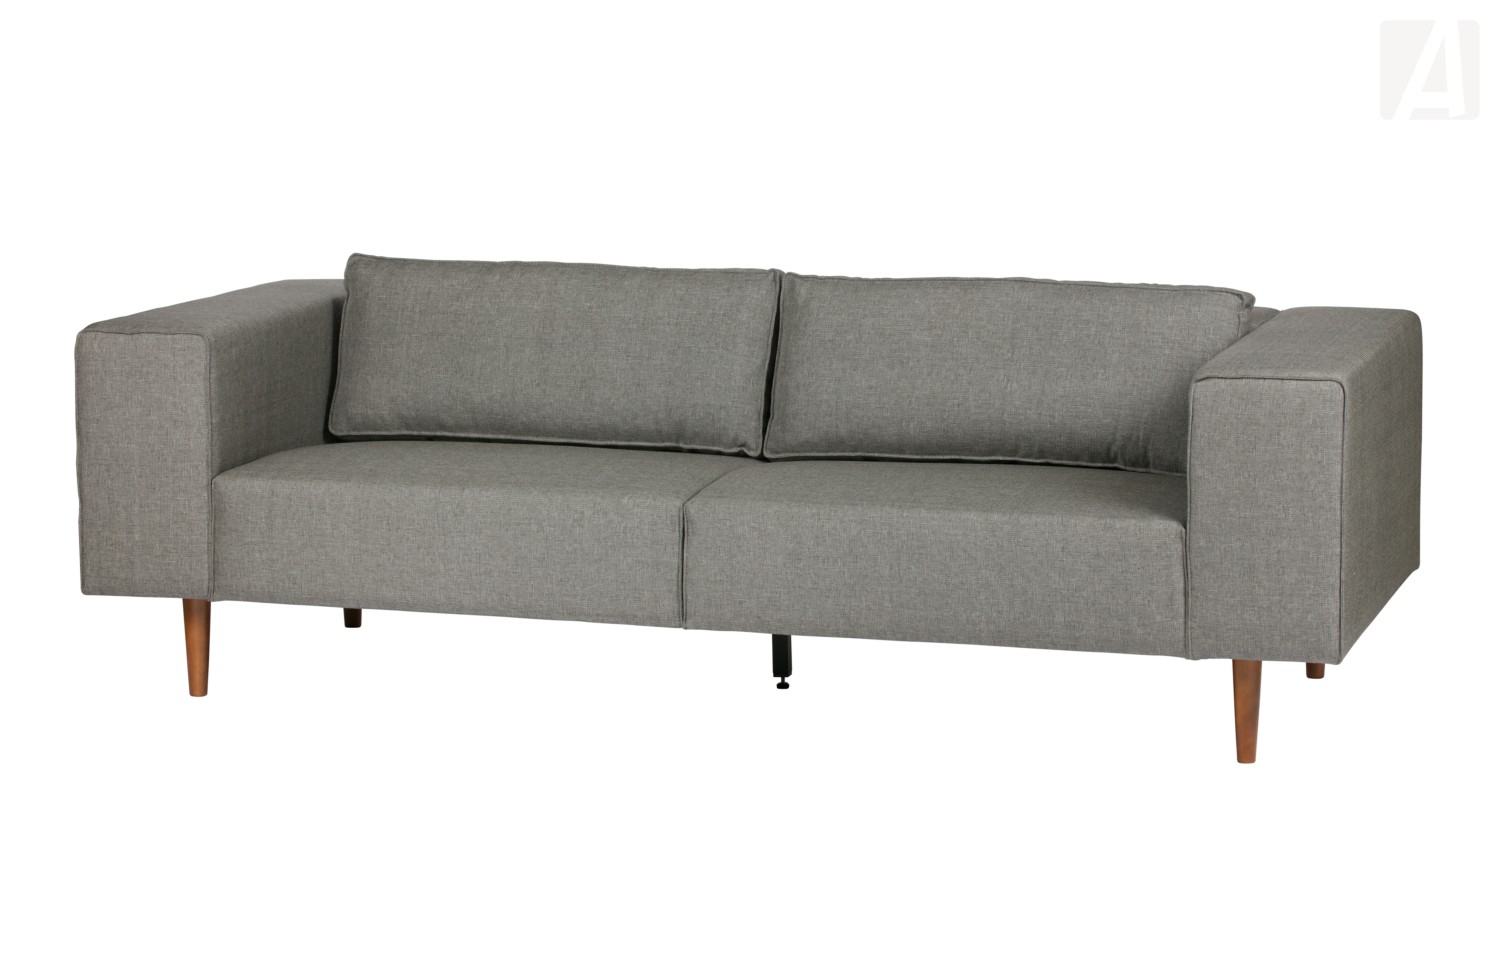 woood bjork 3 sitzer sofa mit holzbeinen grau. Black Bedroom Furniture Sets. Home Design Ideas